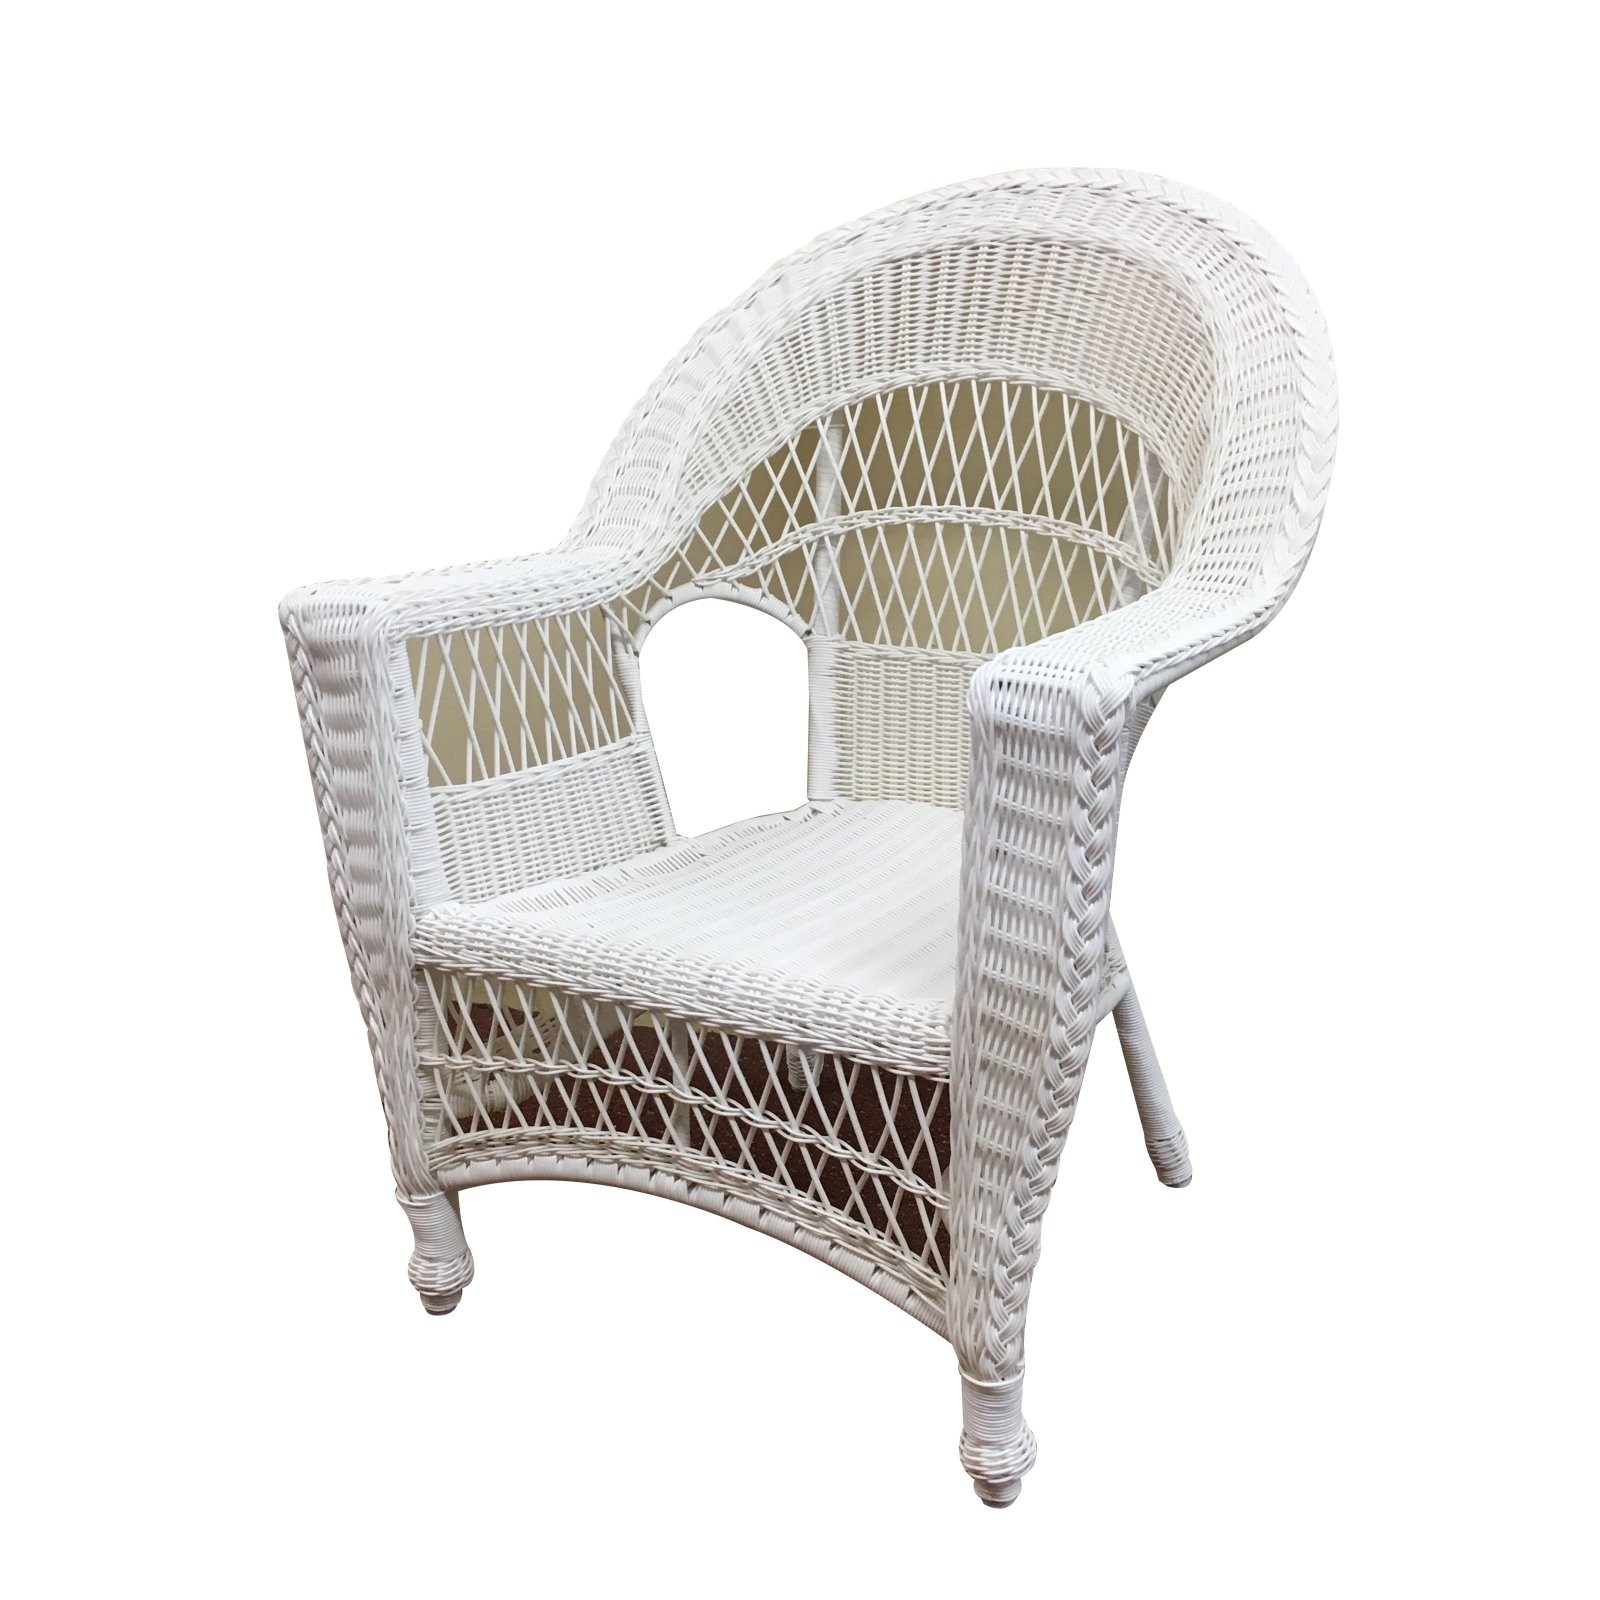 outdoor wicker paradise madison wicker patio dining chair with rh pinterest com